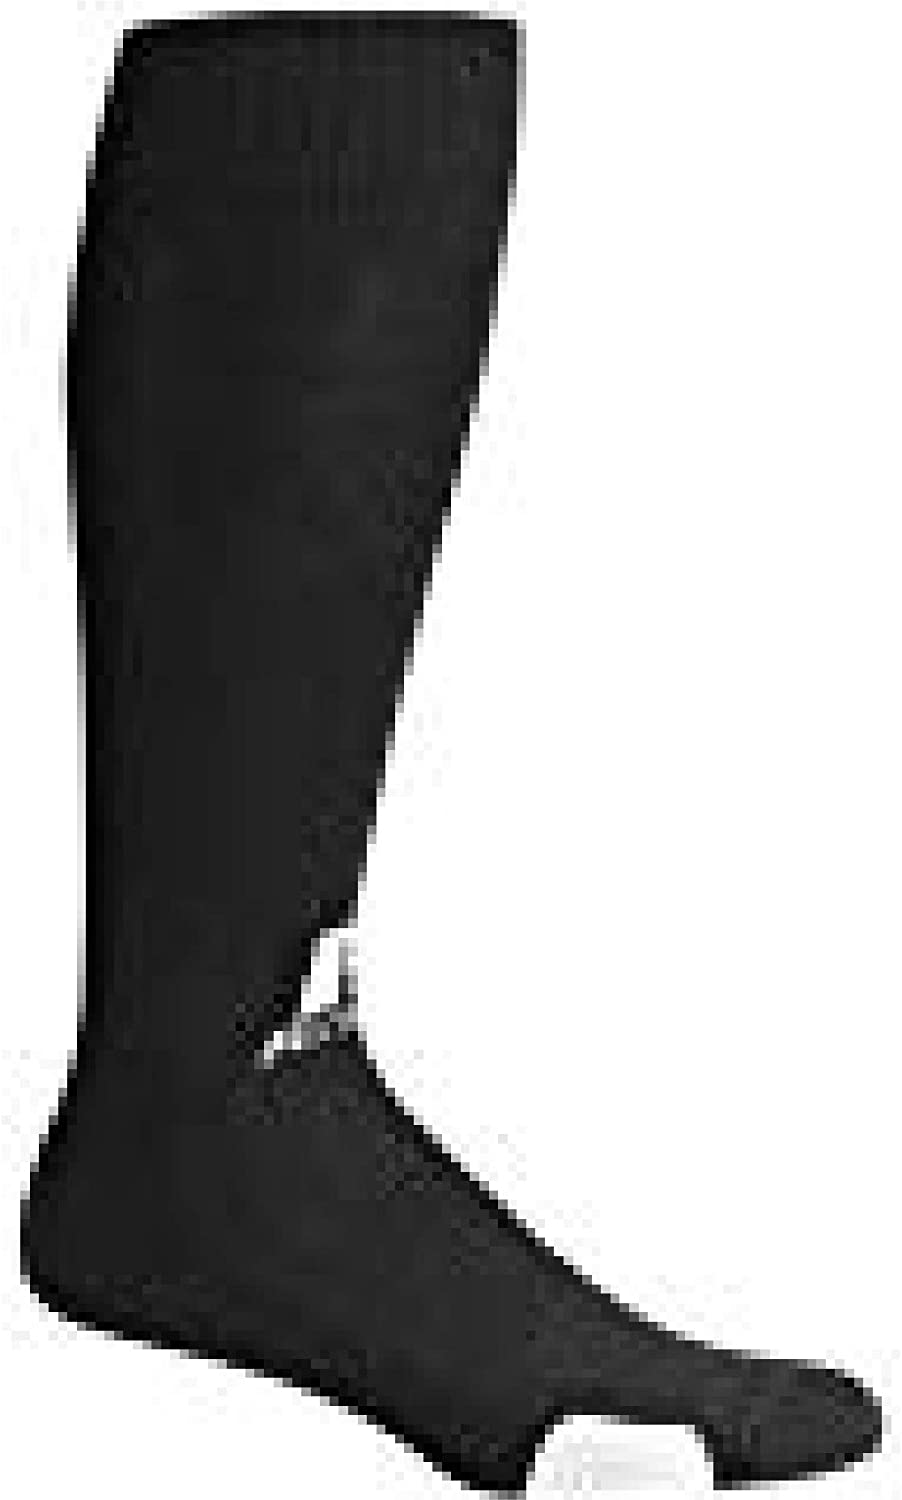 Russell Brand Max 53% OFF YOUTH All Sports Pair 2 Tampa Mall Sock Black S